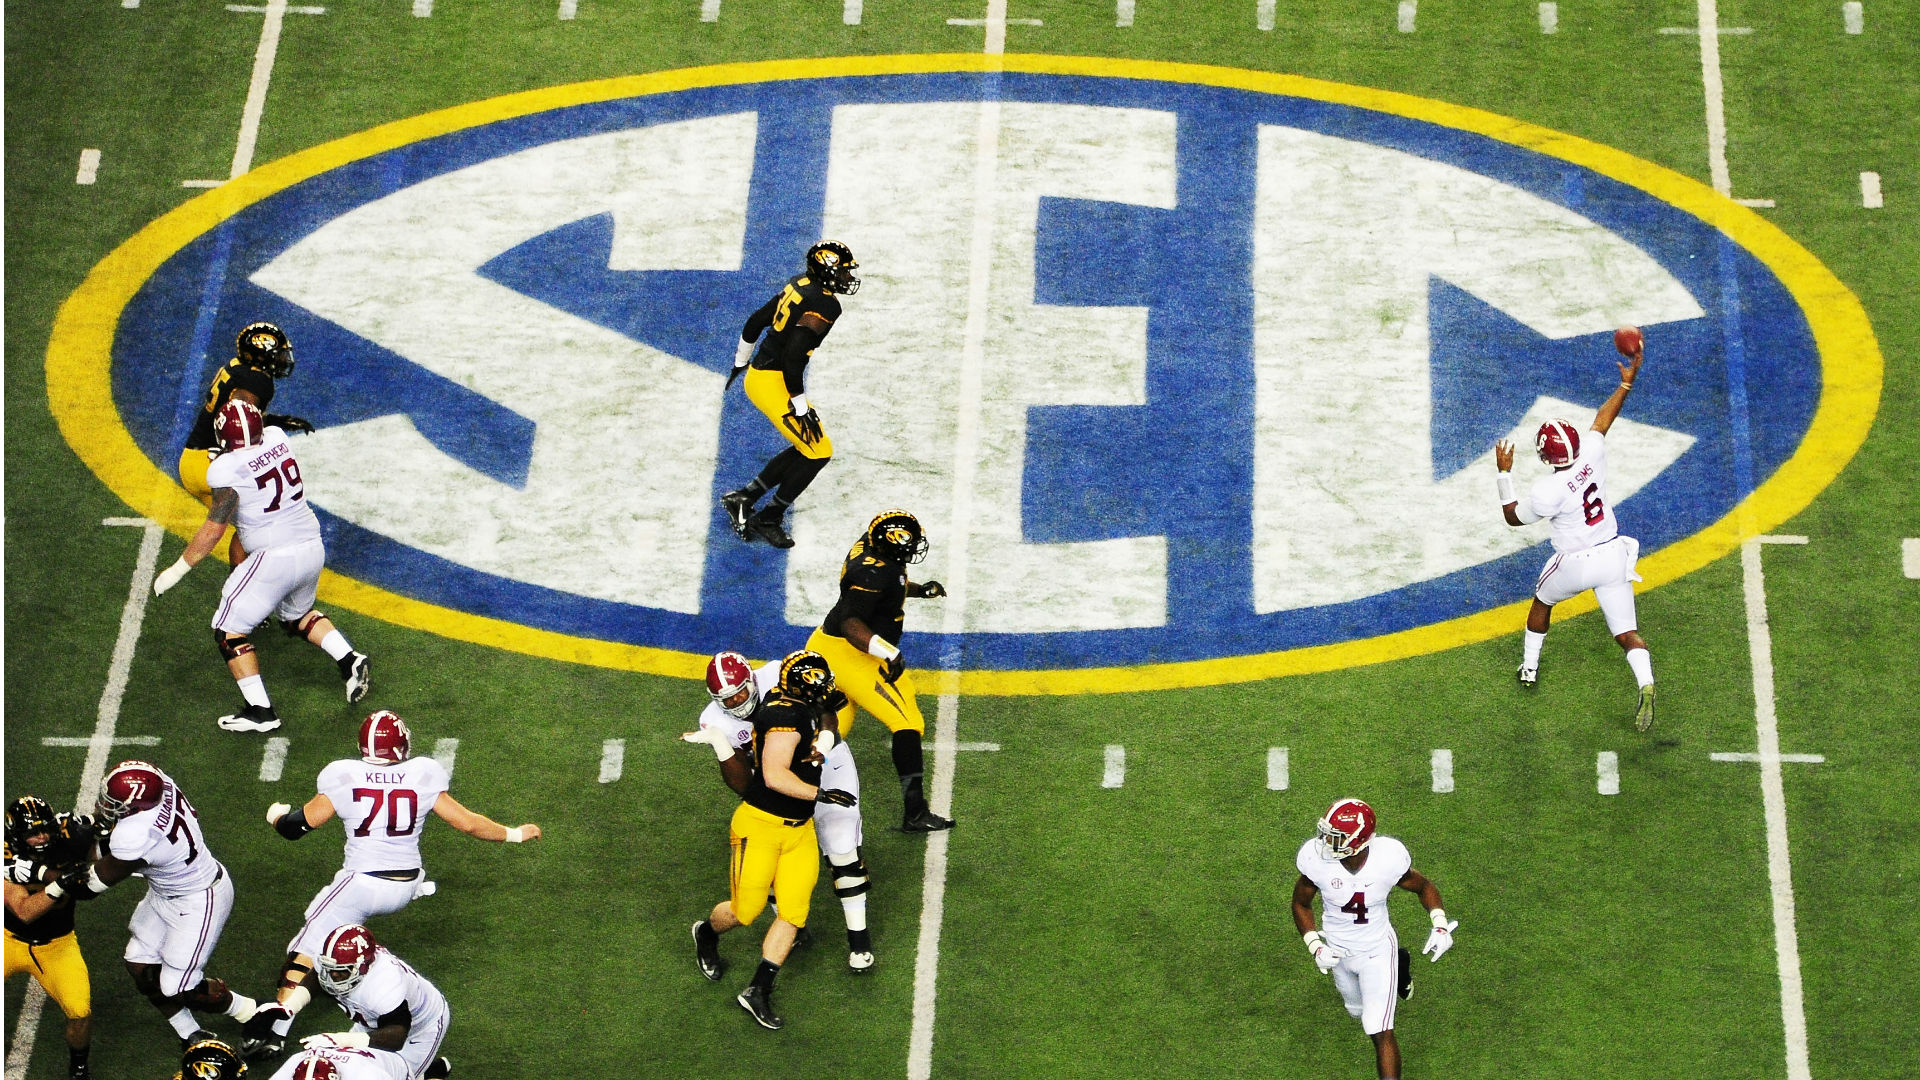 Sec-logo-03022015-us-news-getty-ftr_2bh8z6nmj48f1u3mclwquuo3n